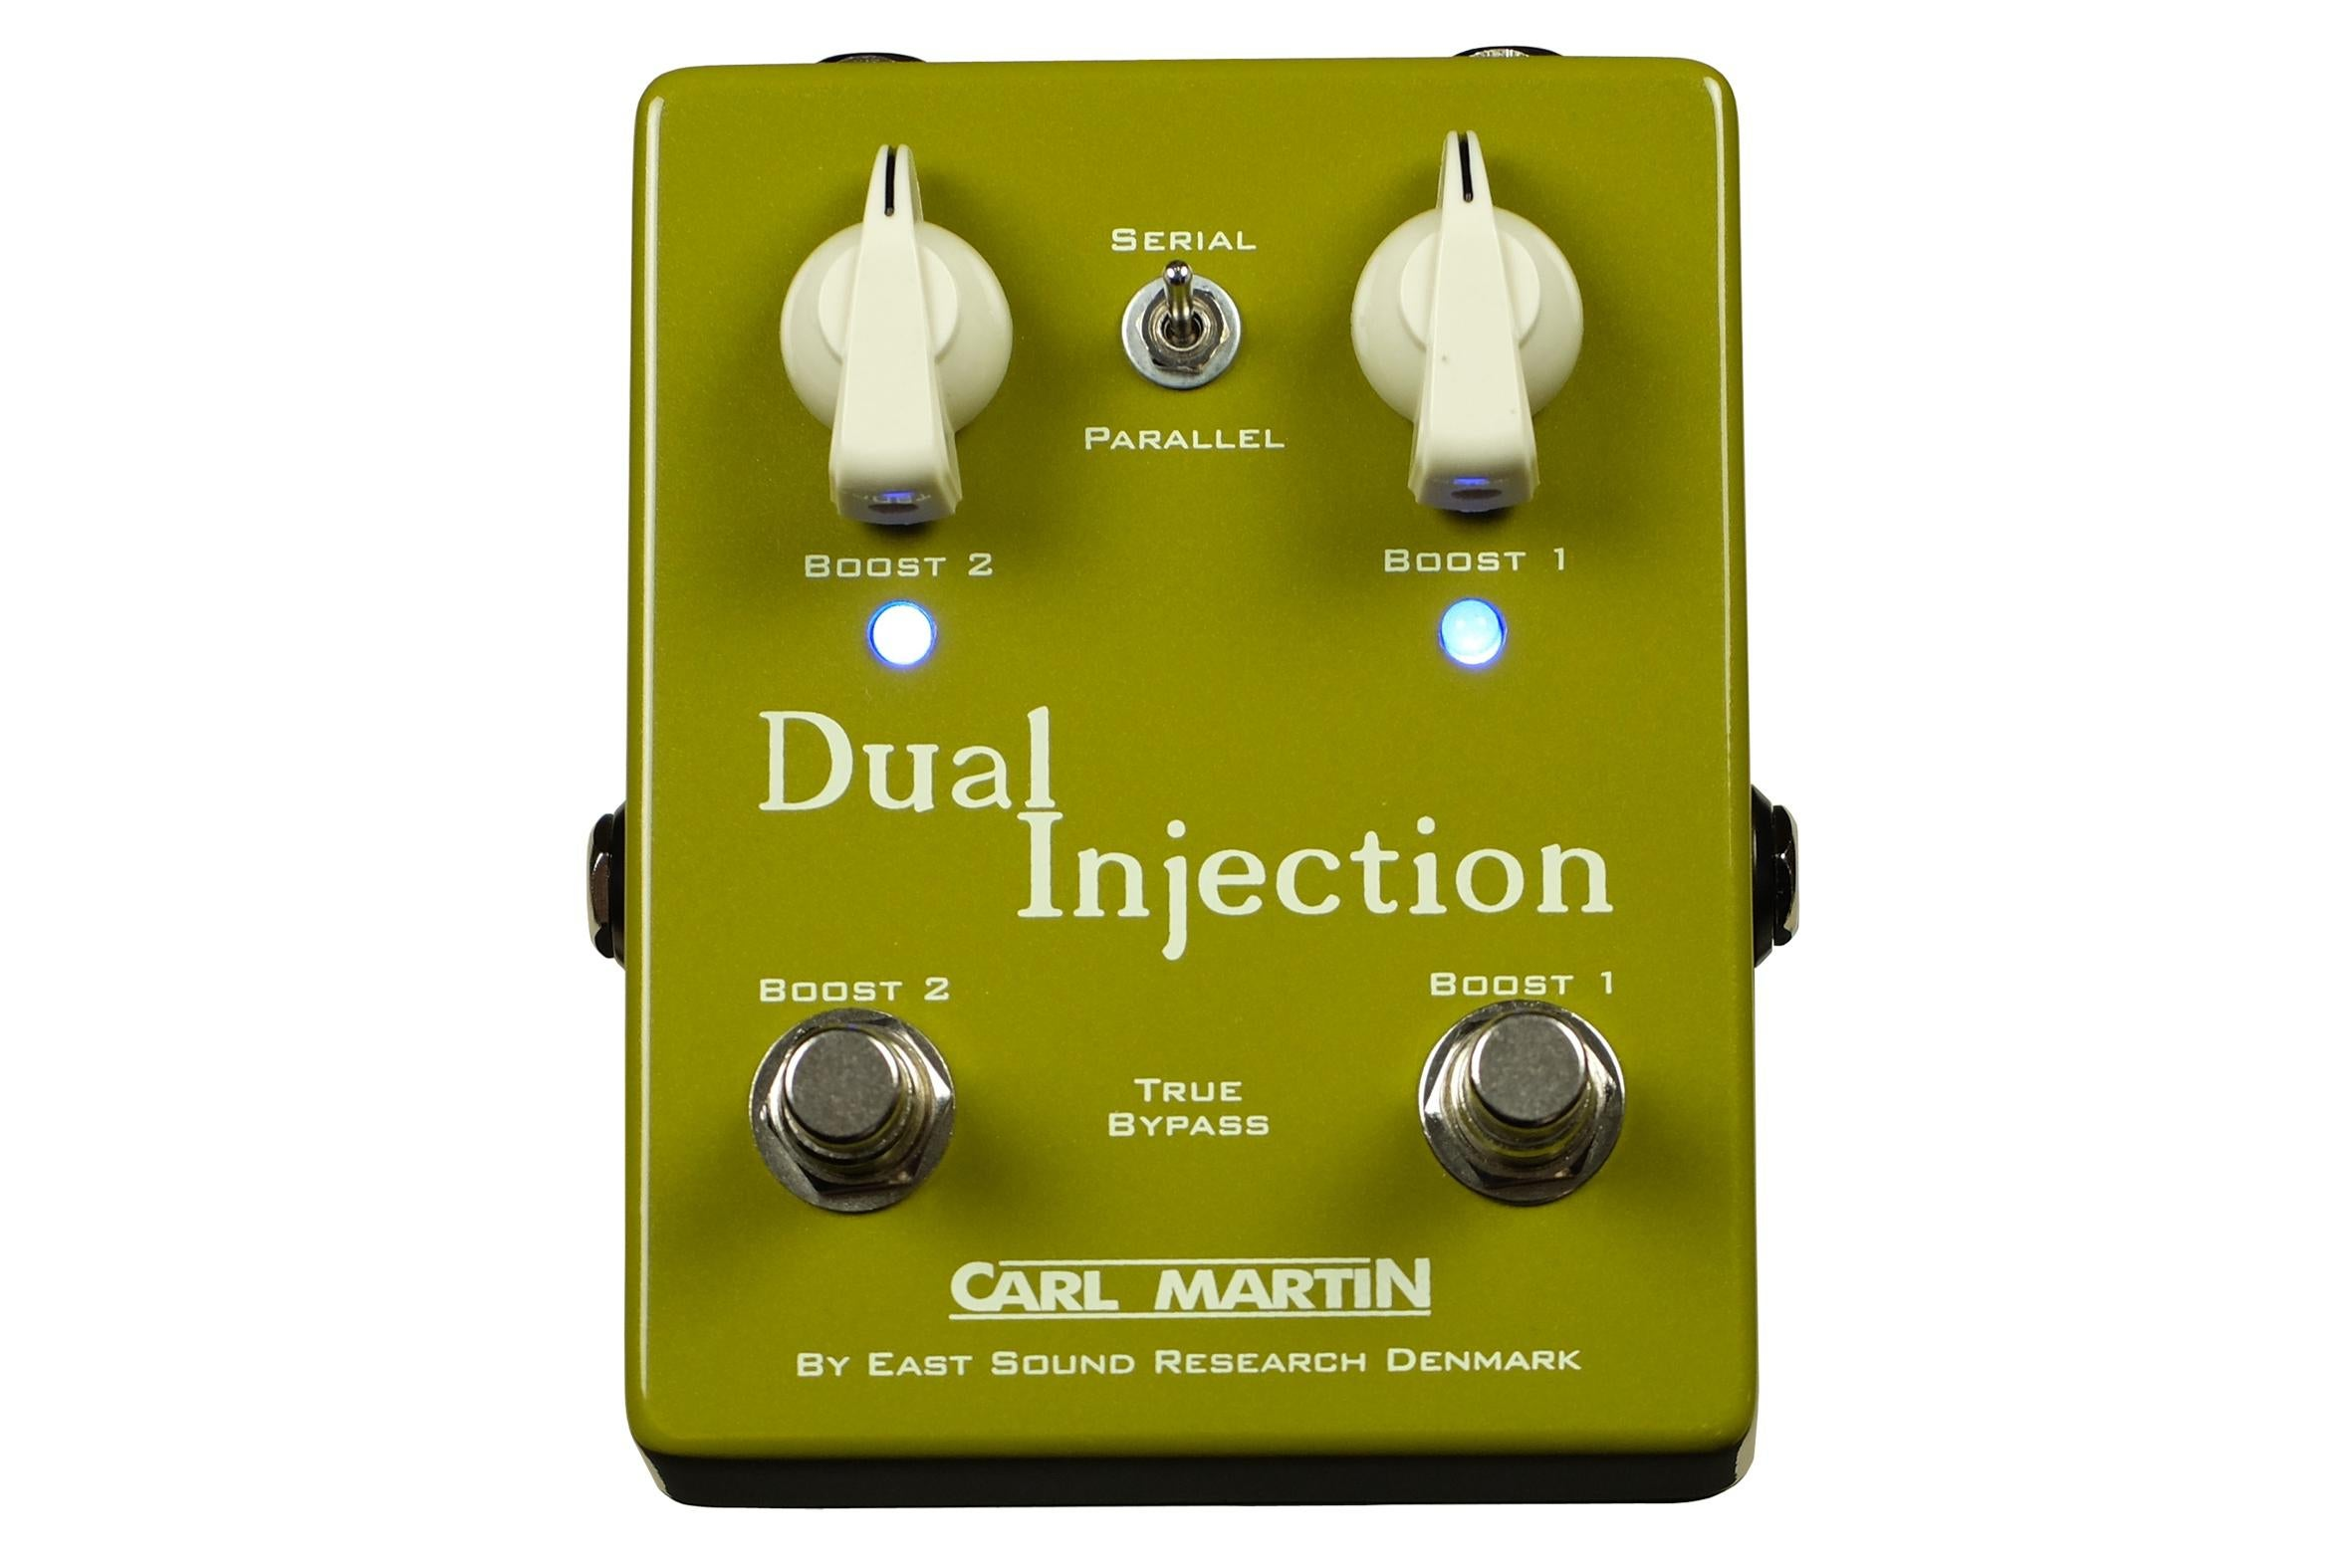 Carl Martin Dual Injection 2-in-1 Boost Guitar Effects Pedal for sale